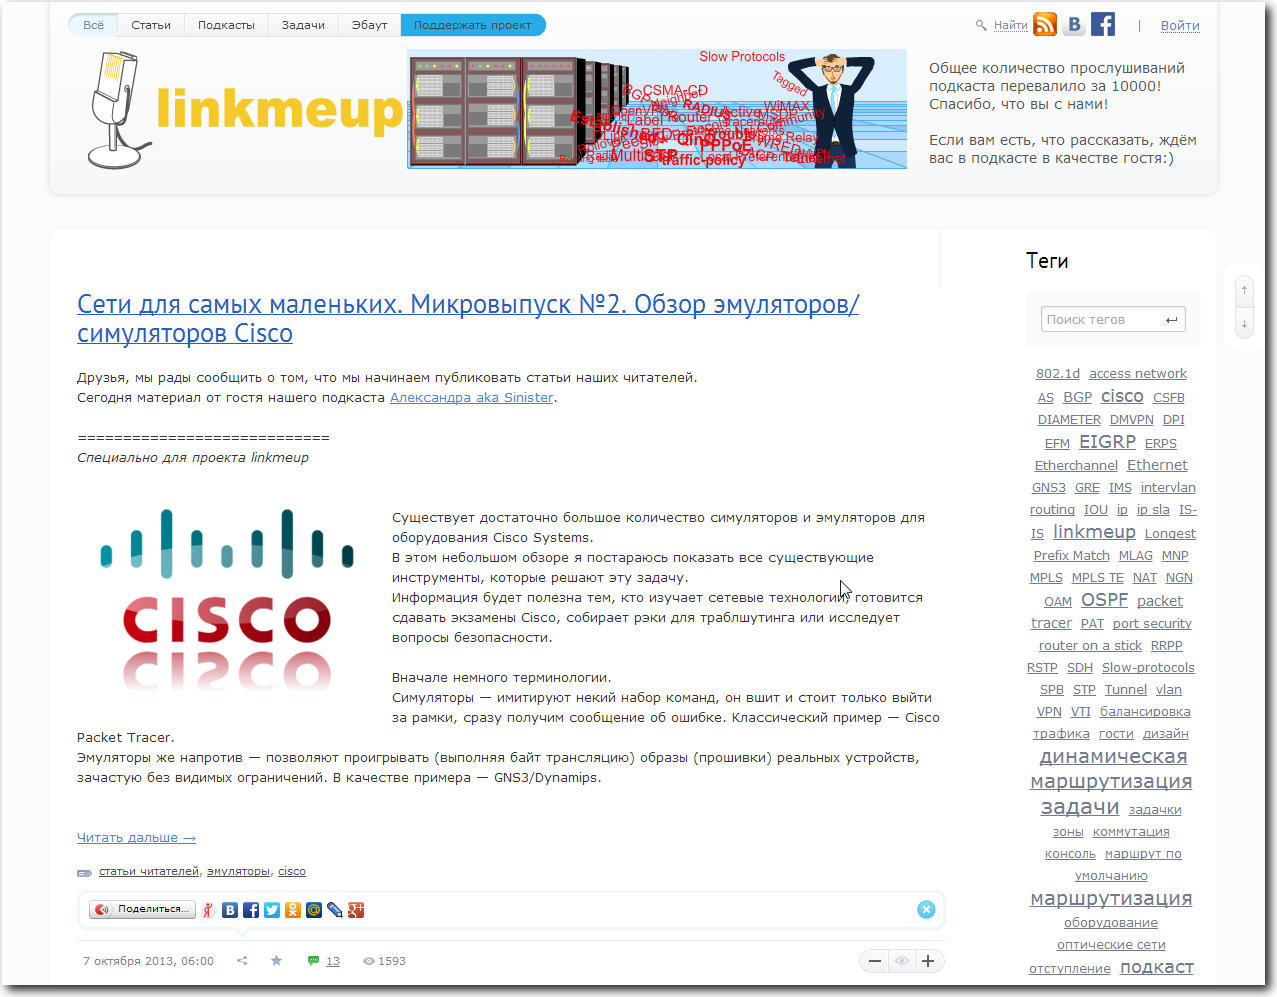 Блог linkmeup.ru